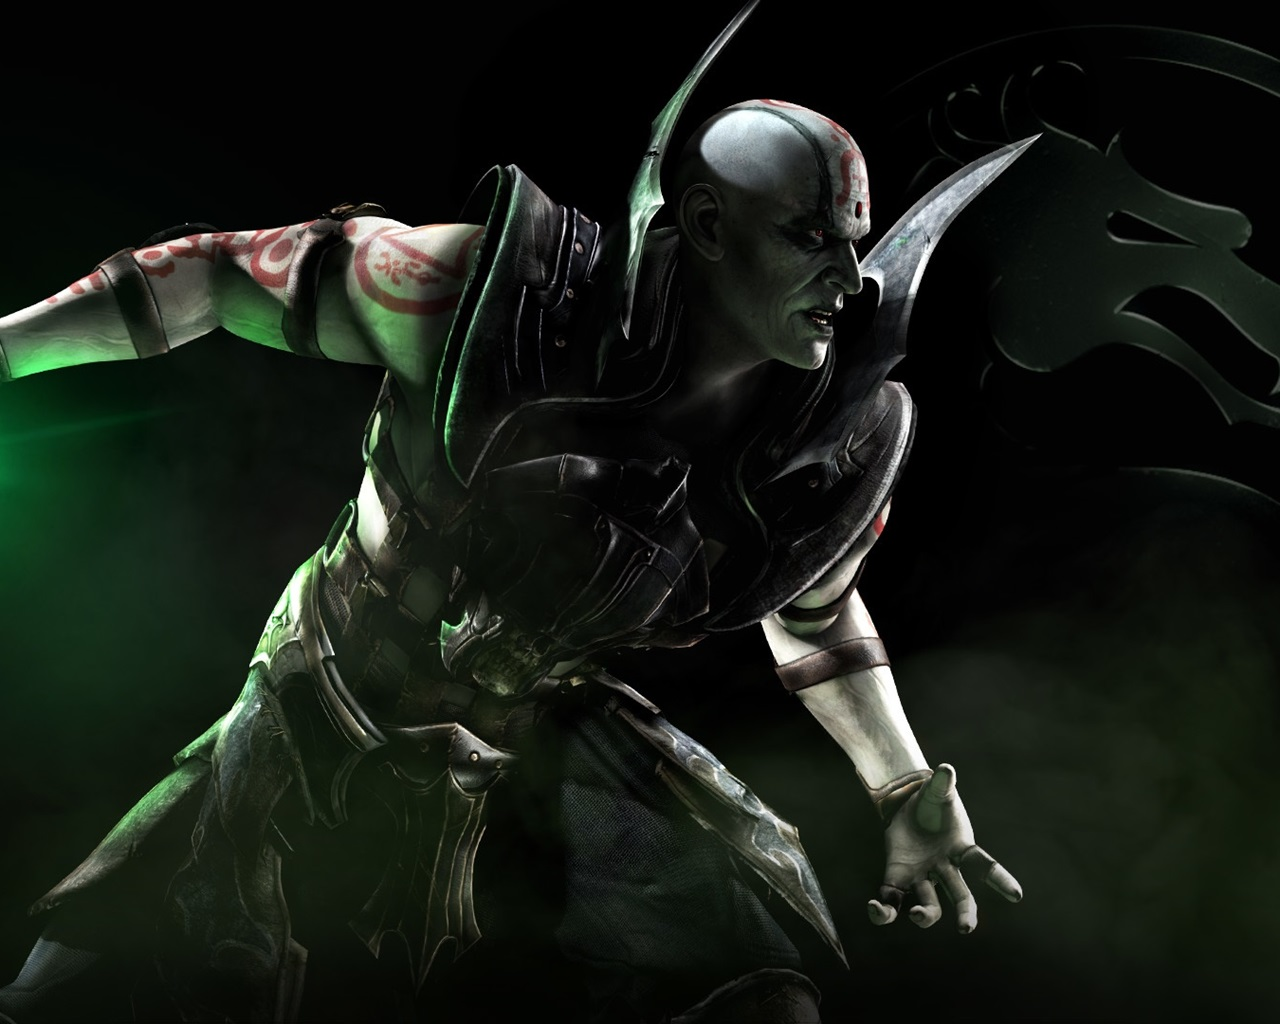 Play Mortal Kombat Download For Pc Game - ifile